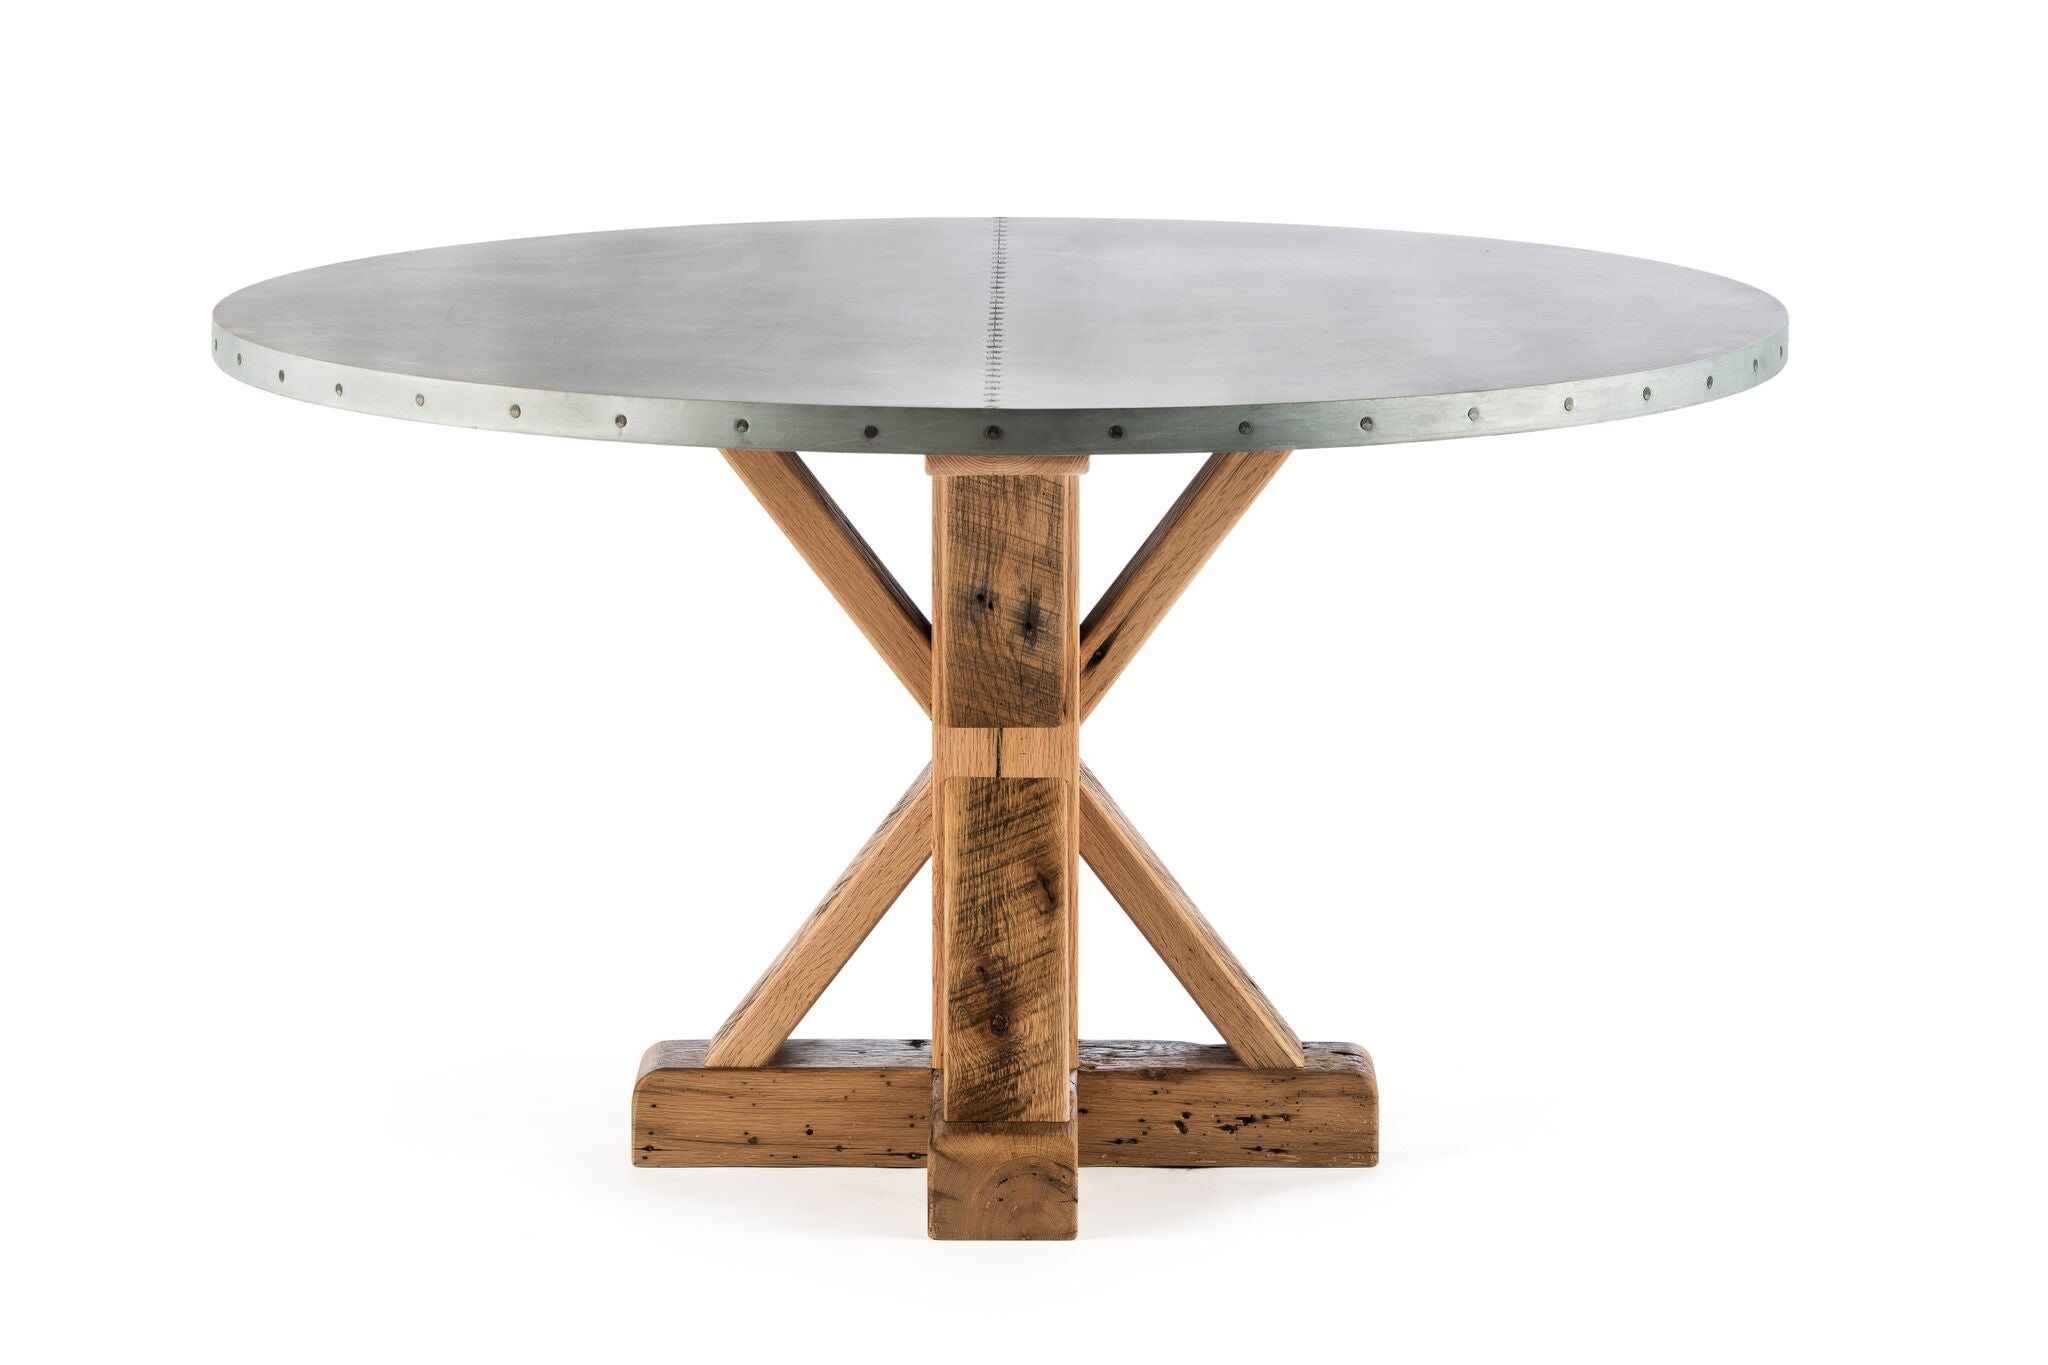 Zinc Round Tables | French Trestle Table | CLASSIC | Americana on Reclaimed Oak | CUSTOM SIZE D 72 H 30 | 2.5"